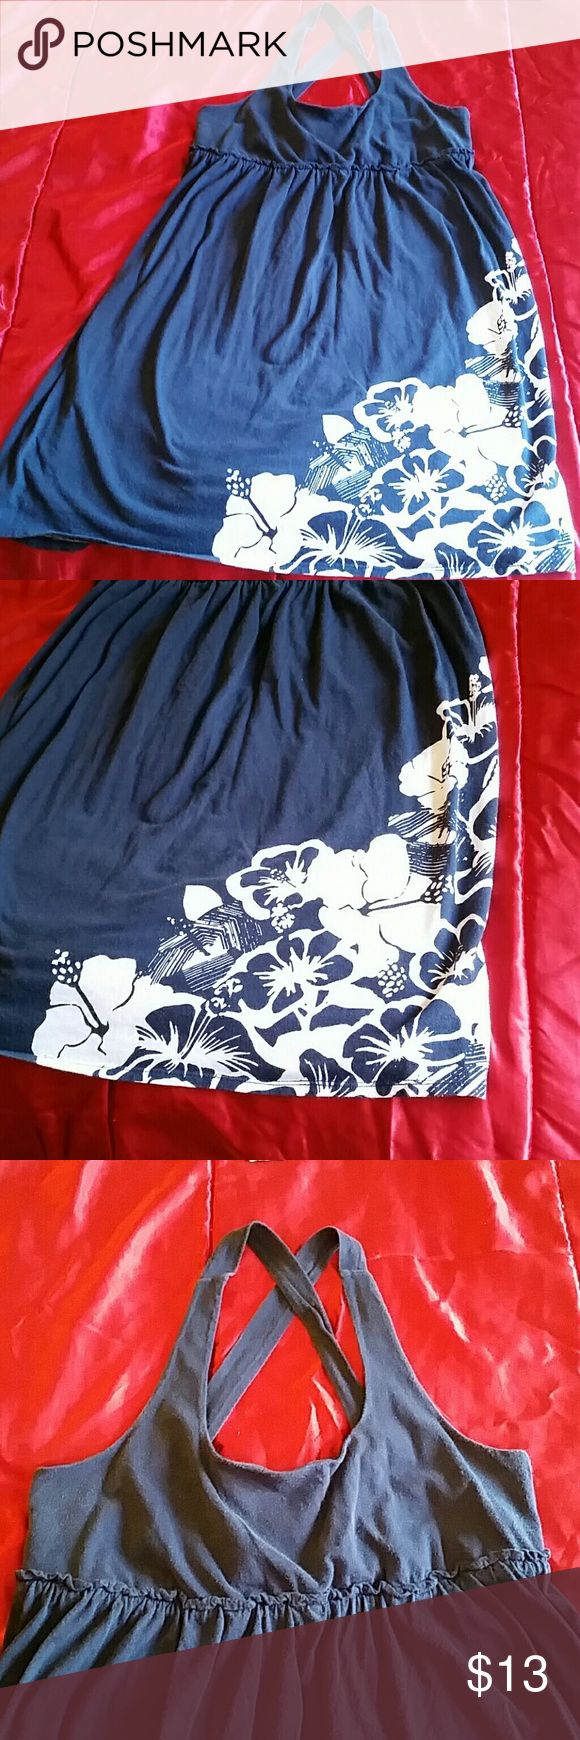 Navy Blue Hawaiian Print Dress Mossimo sundress with a pretty hawiian print Mossimo Supply Co. Dresses